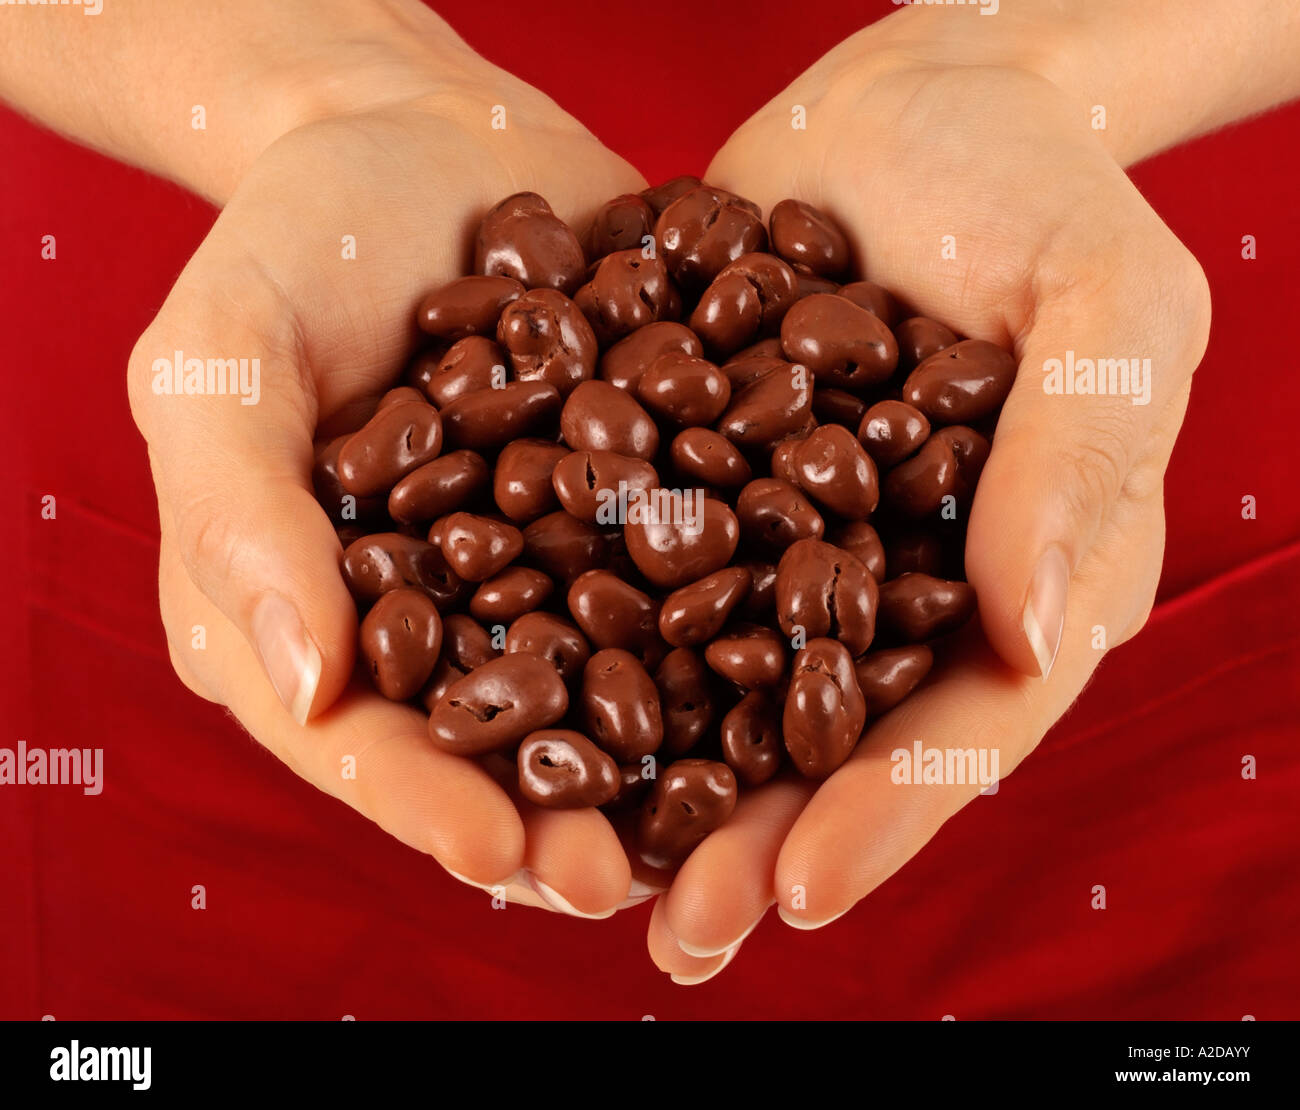 WOMAN WITH HANDFUL OF CHOCOLATE COVERED RAISINS Stock Photo ...